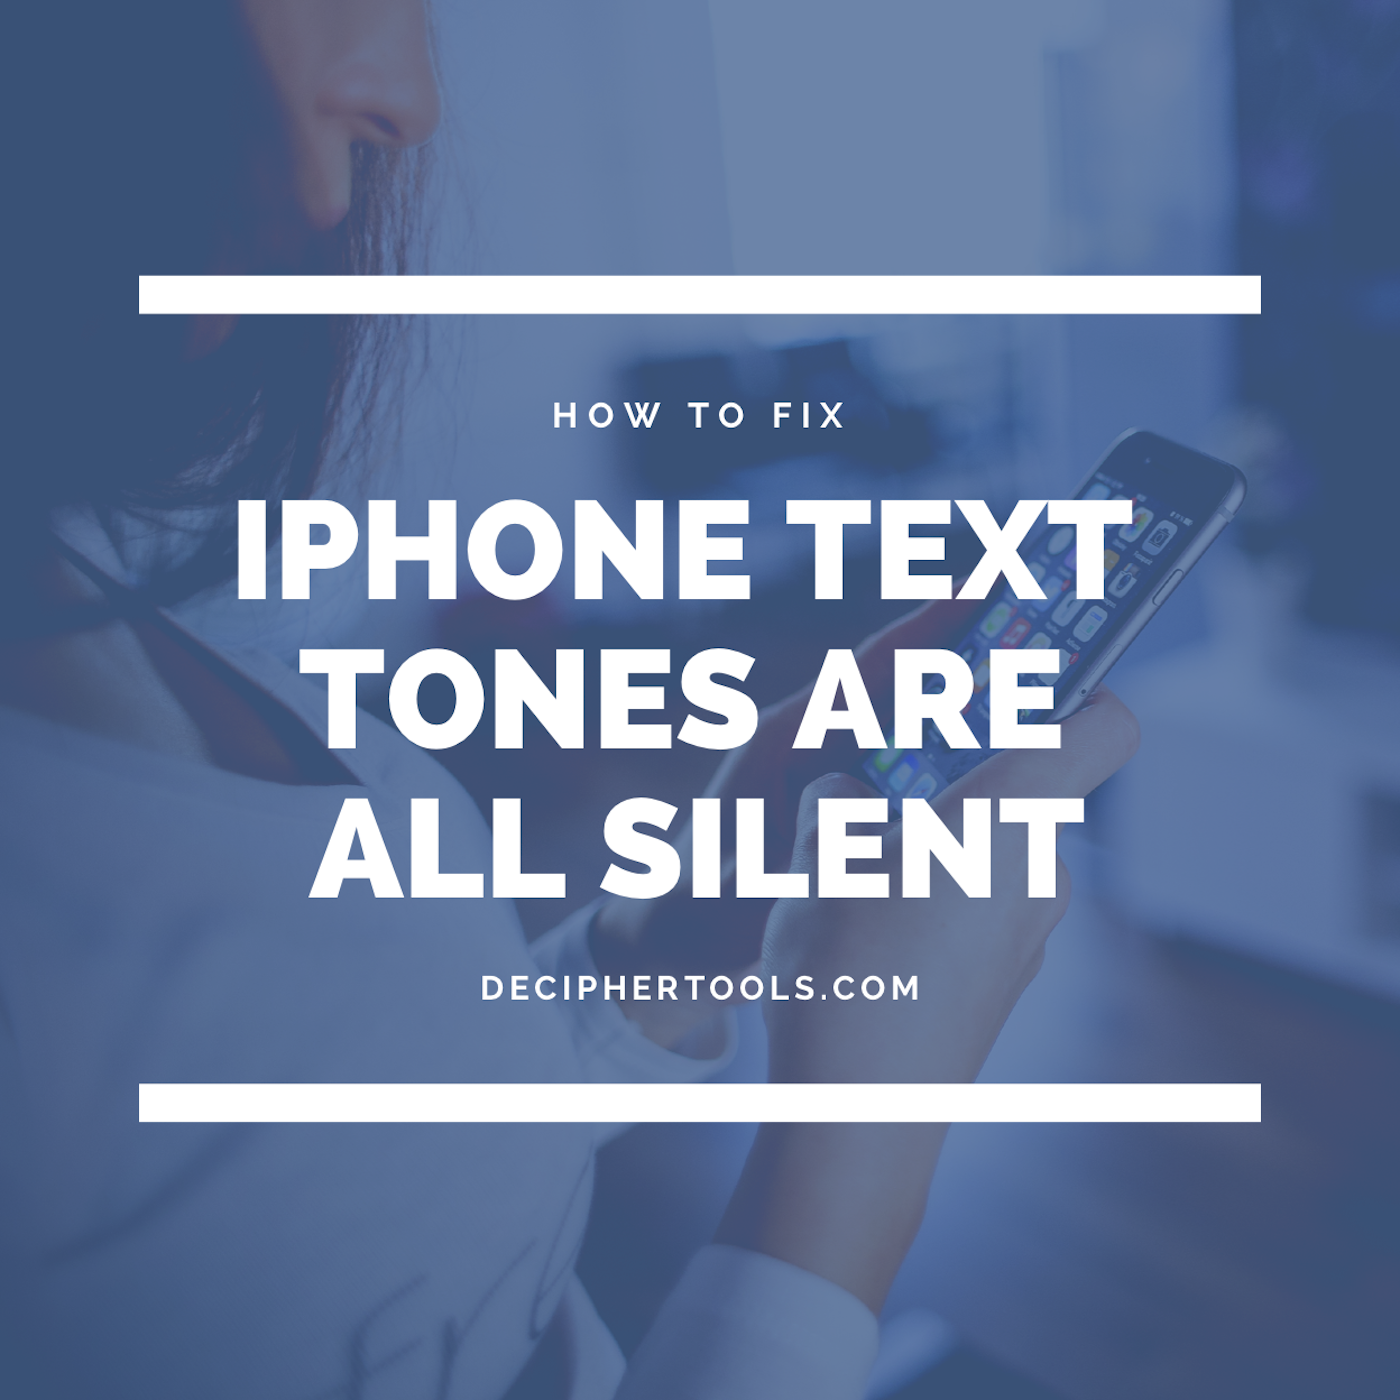 iPhone Text Tones are All Silent